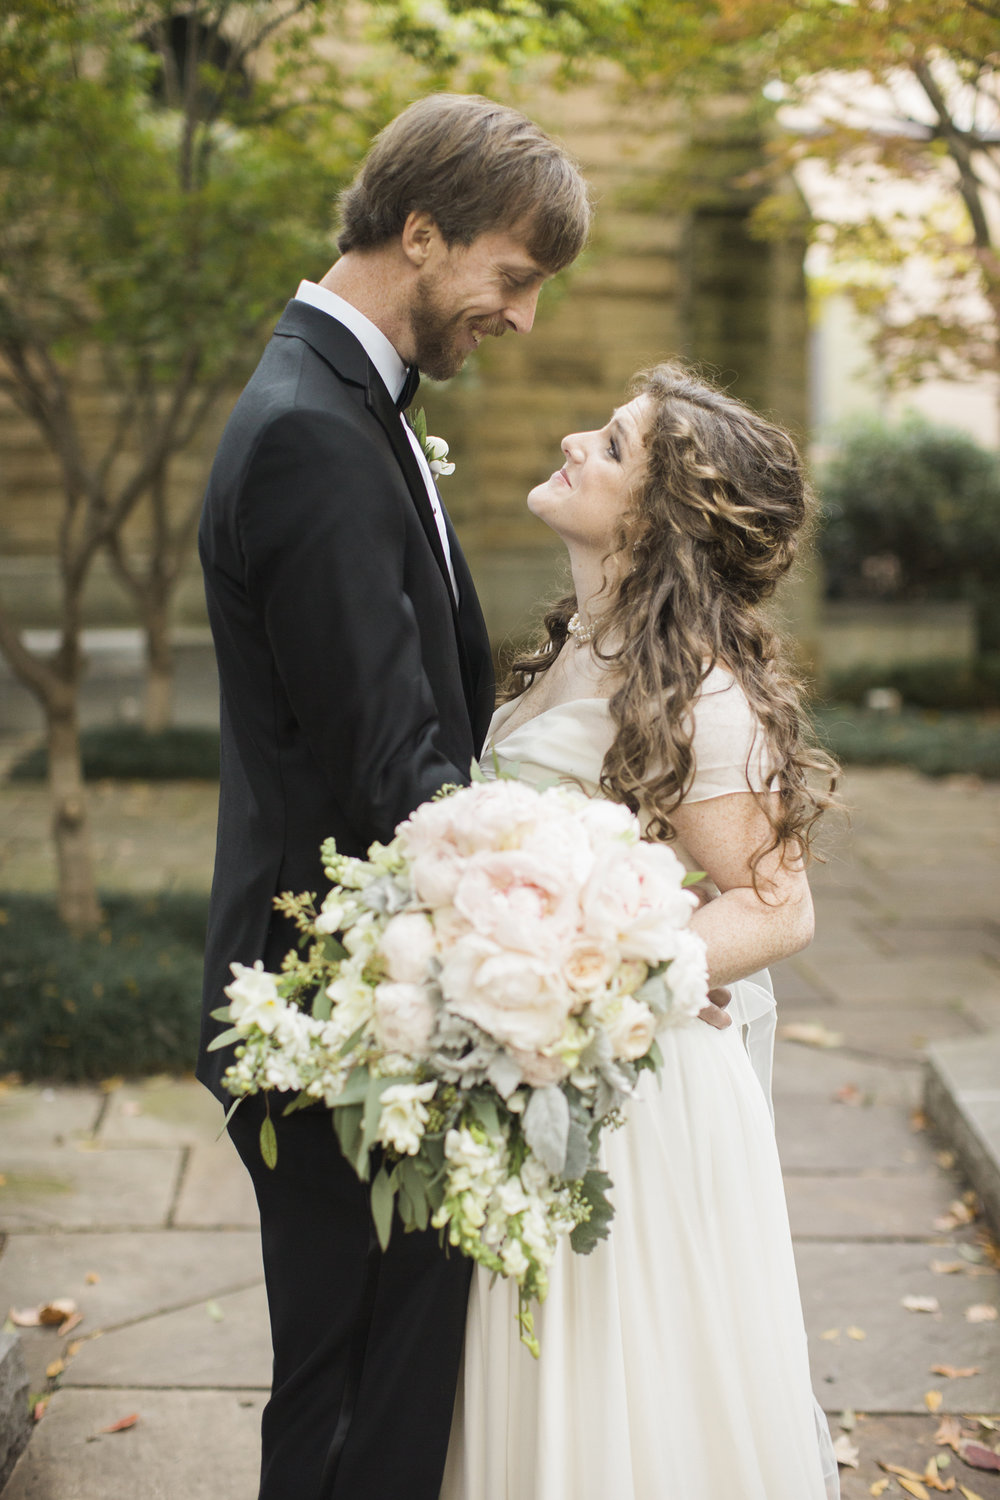 Emily Prather & Catlin | Handley Breaux Designs | Alabama Wedding Planner | Birmingham Weddings